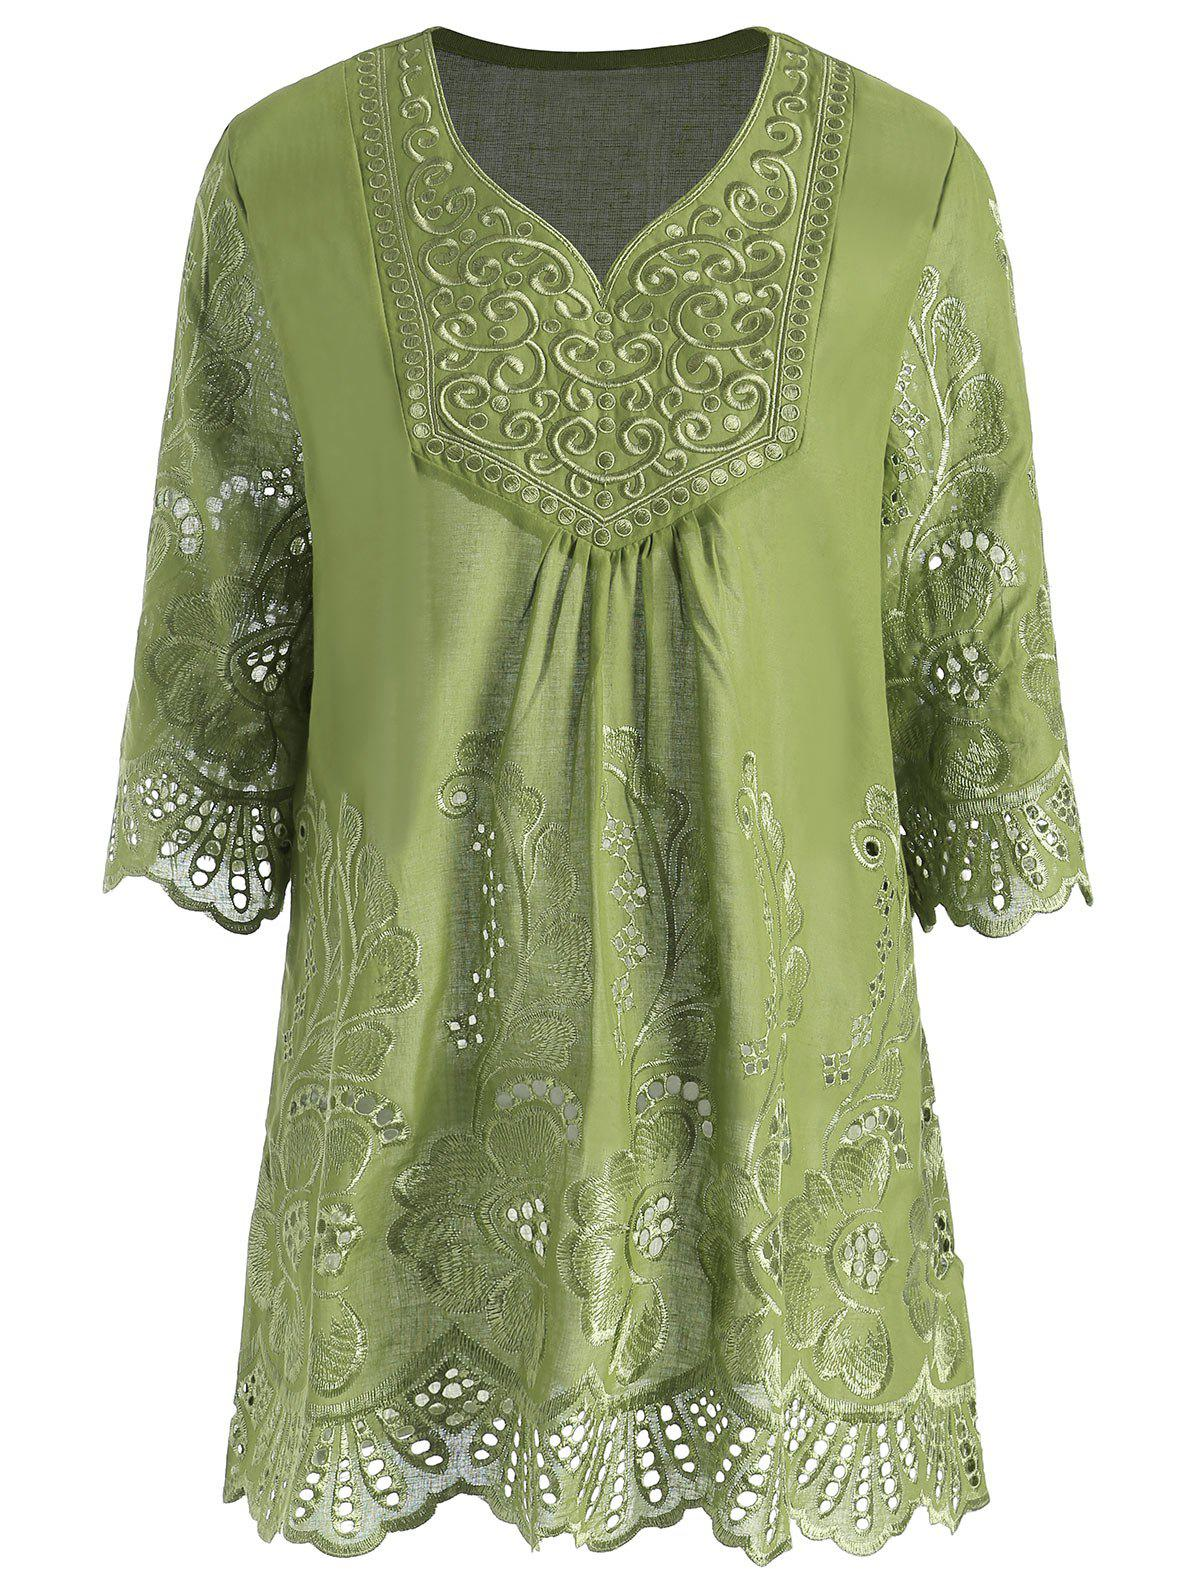 Plus Size V Neck Embroidered Tunic TopWOMEN<br><br>Size: 4XL; Color: GREEN; Material: Polyester; Shirt Length: Long; Sleeve Length: Three Quarter; Collar: V-Neck; Style: Casual; Season: Summer; Pattern Type: Solid; Weight: 0.2200kg; Package Contents: 1 x Top;